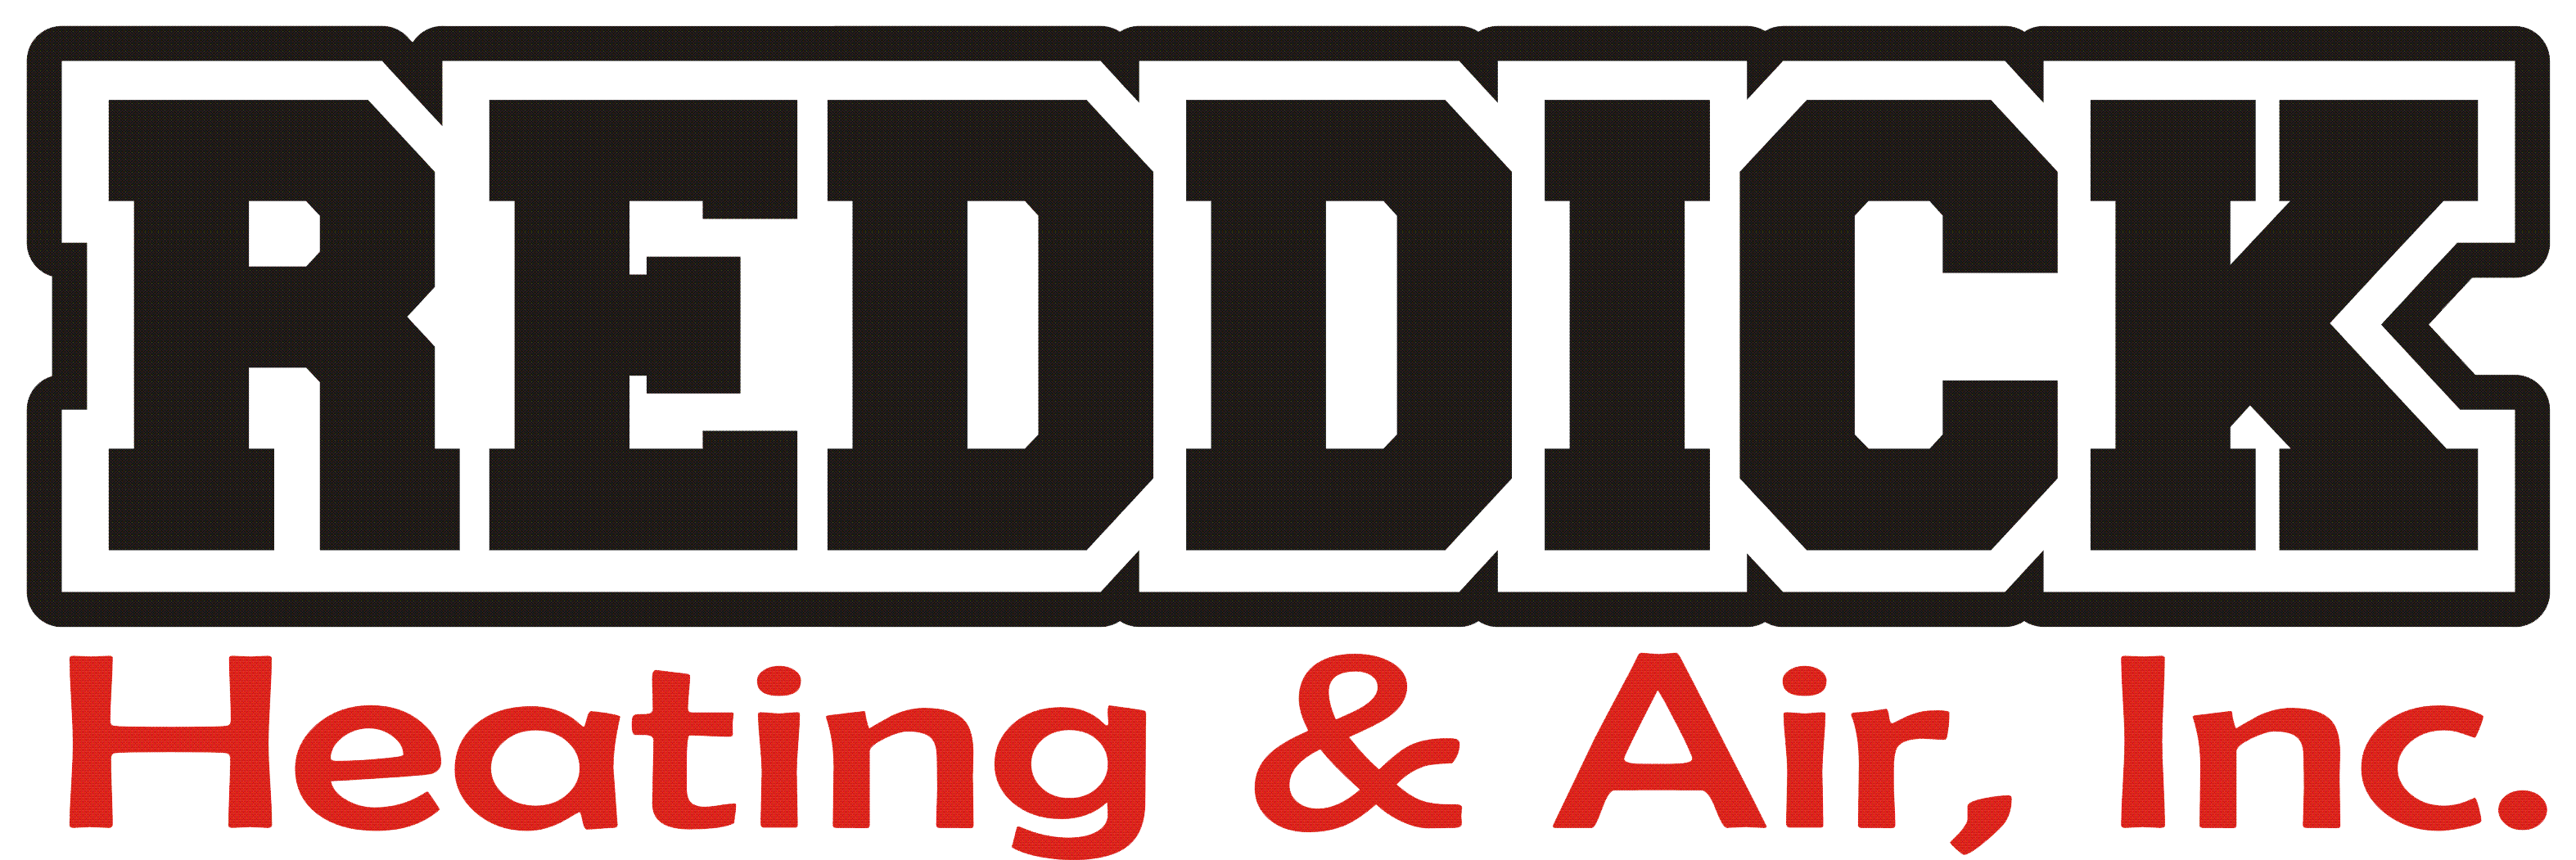 Reddick Heating & Air Inc